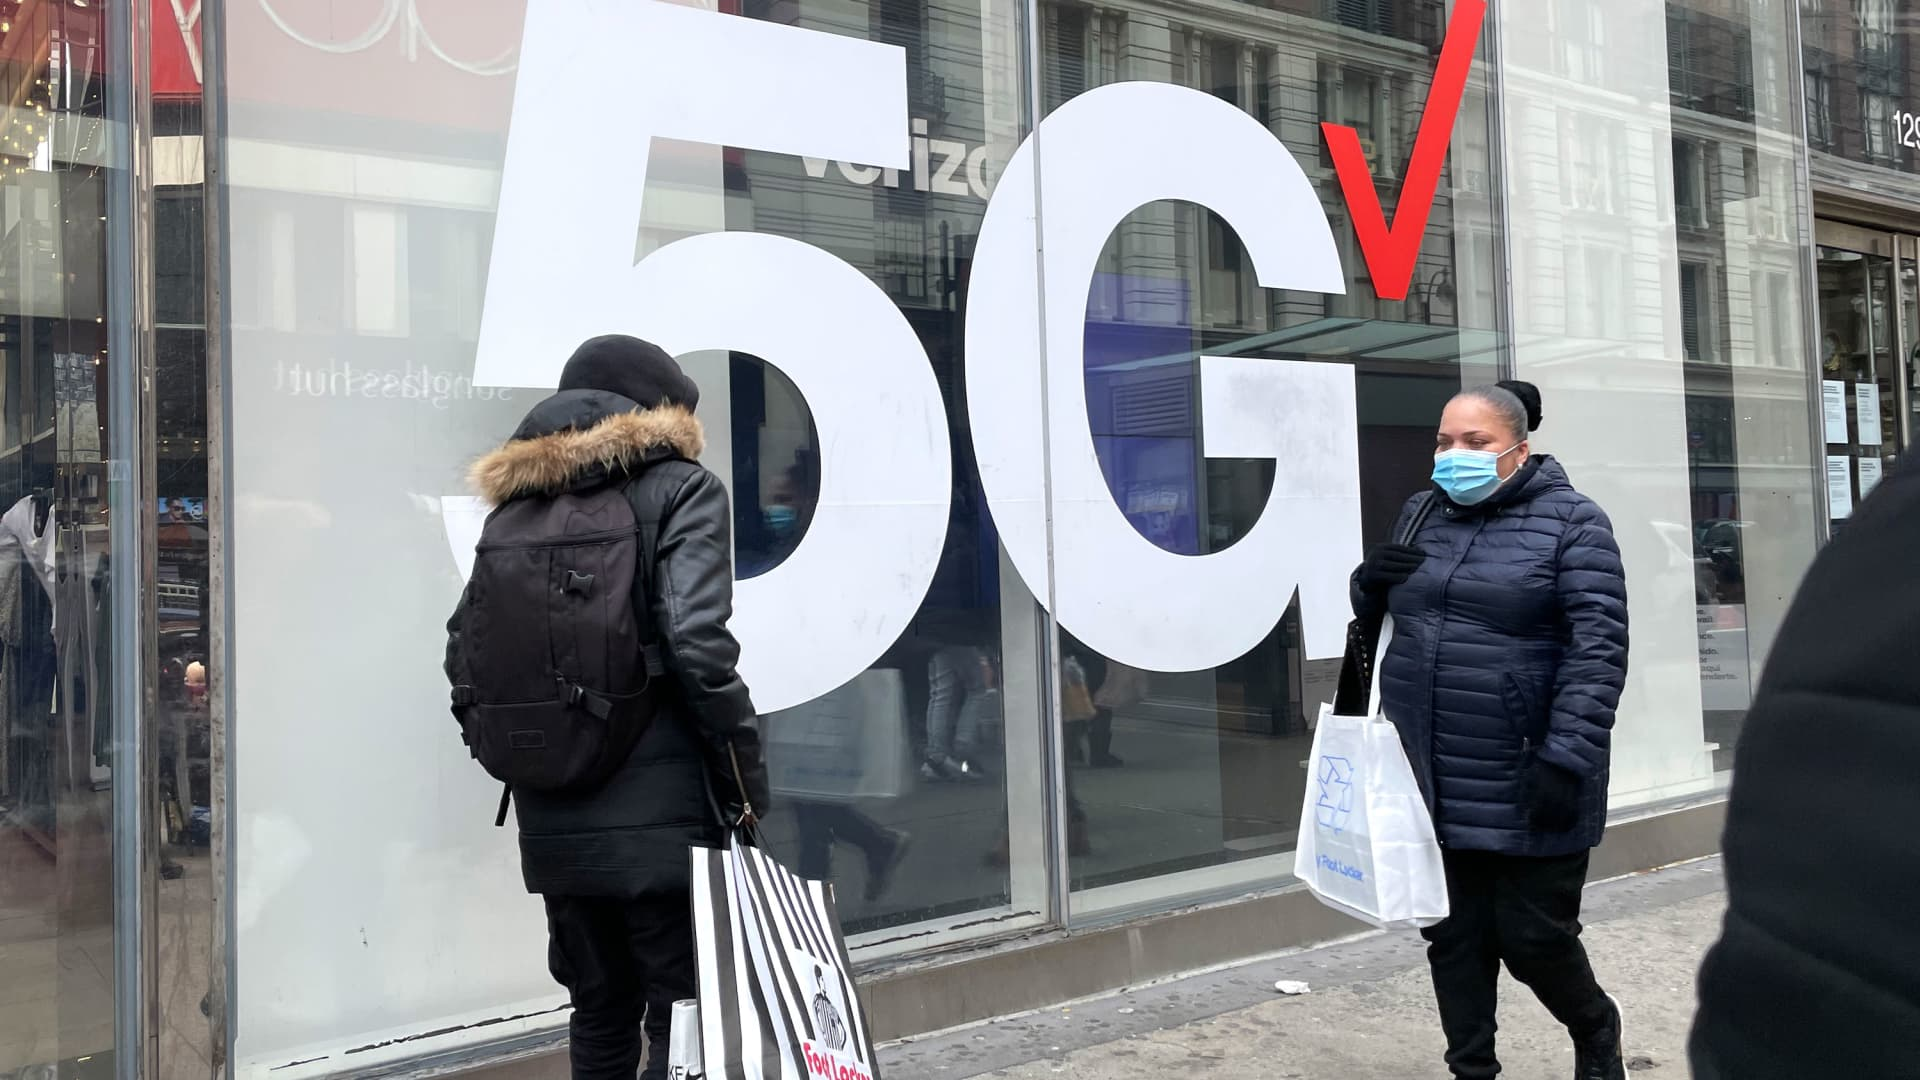 Pedestrians walk by a Verizon 5G sign in New York, April 3, 2021.